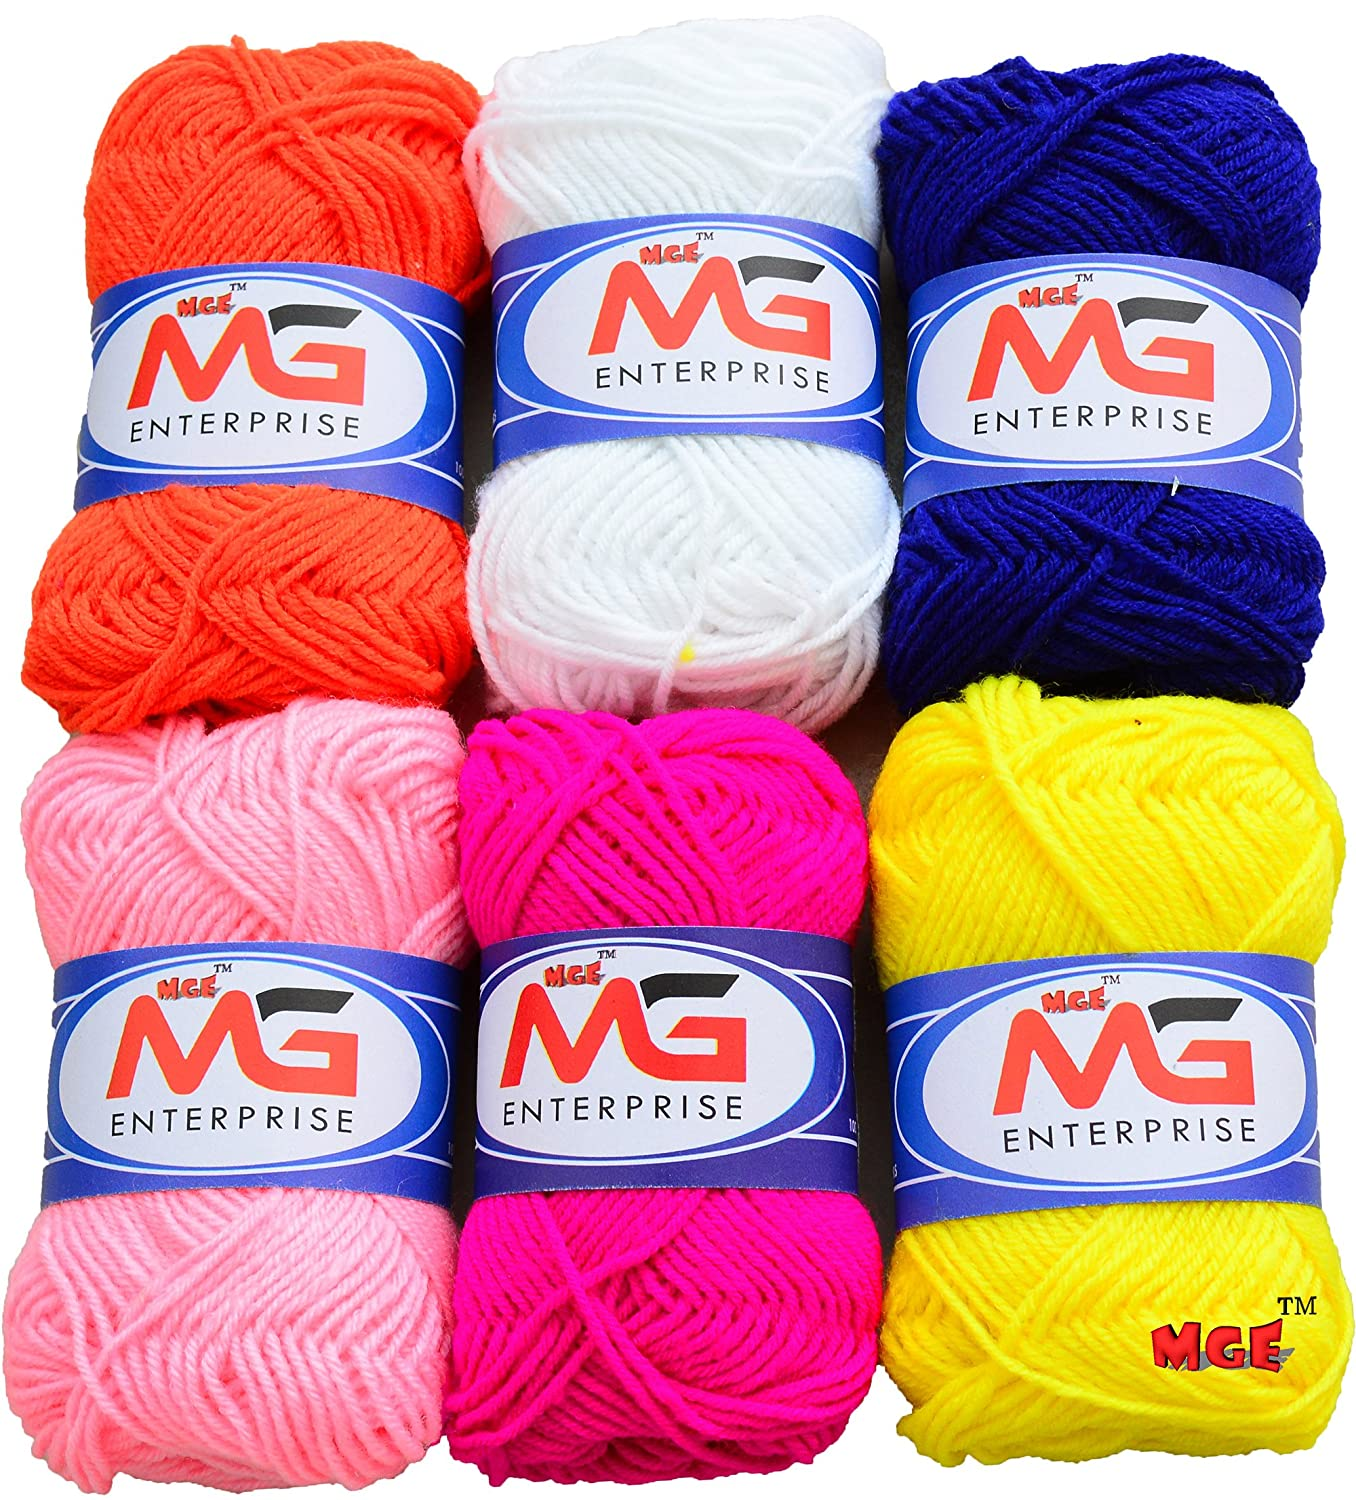 bd9e69e43 Yarn  Buy Yarn Online at Best Prices in India - Amazon.in